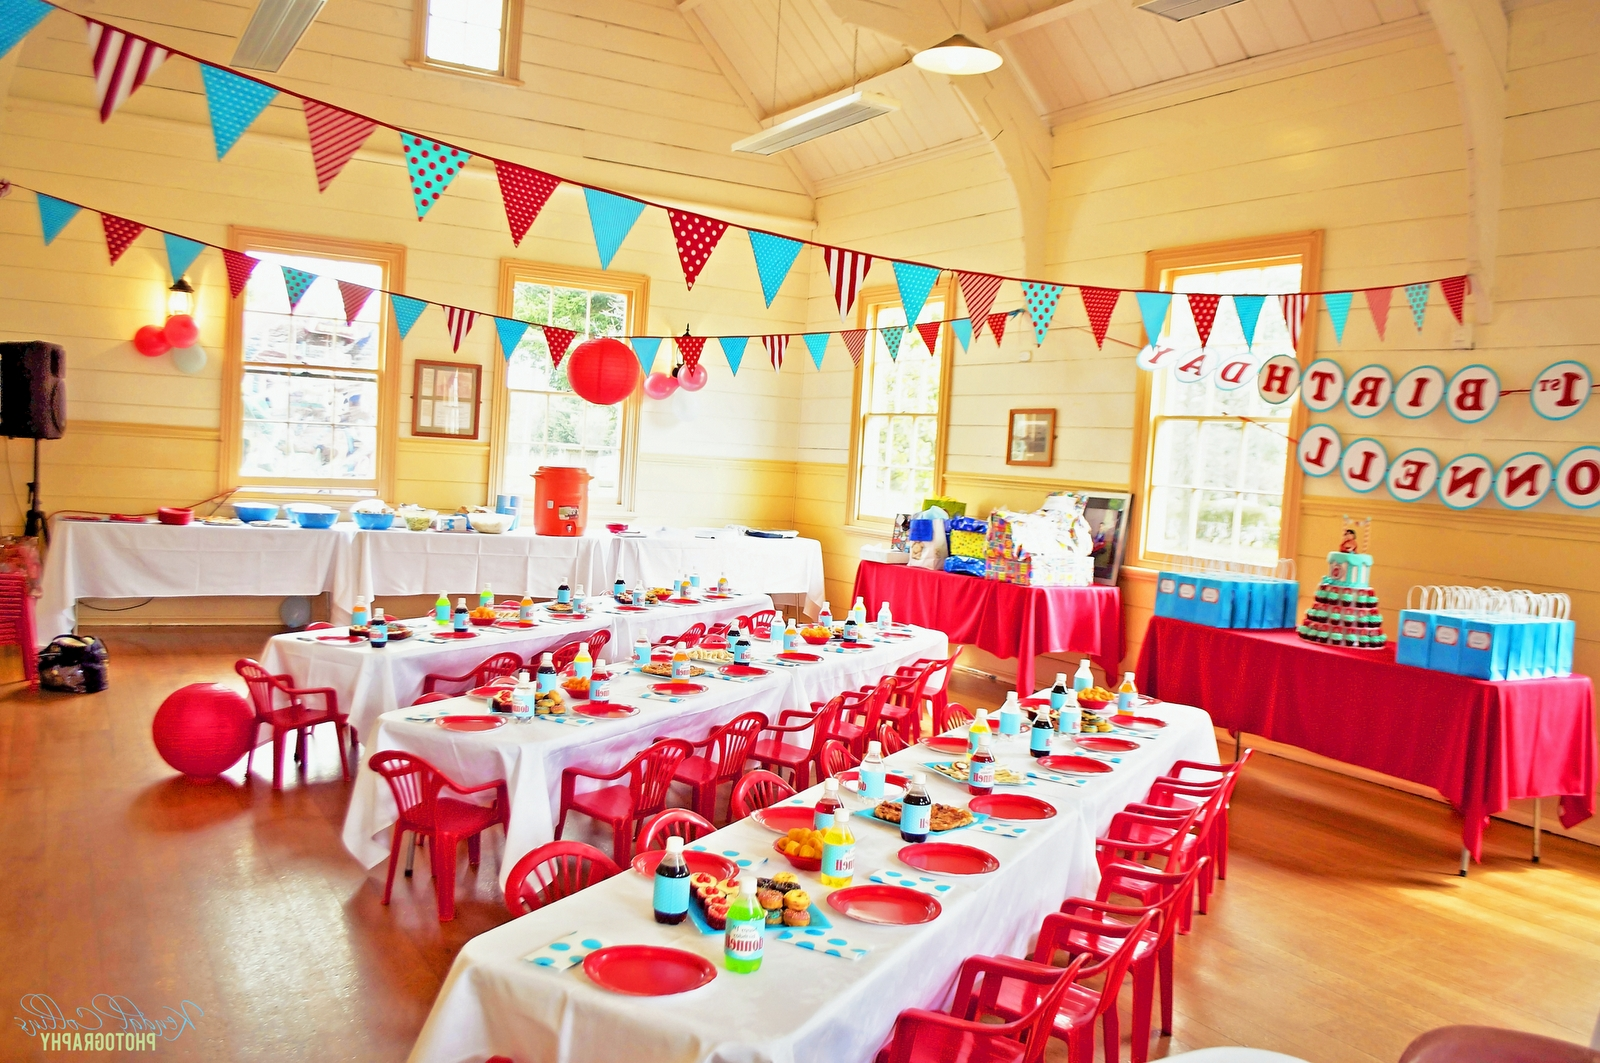 10 Awesome Three Year Old Birthday Party Ideas ideas for boy birthday party at home 9 year old boy birthday party 6 2021